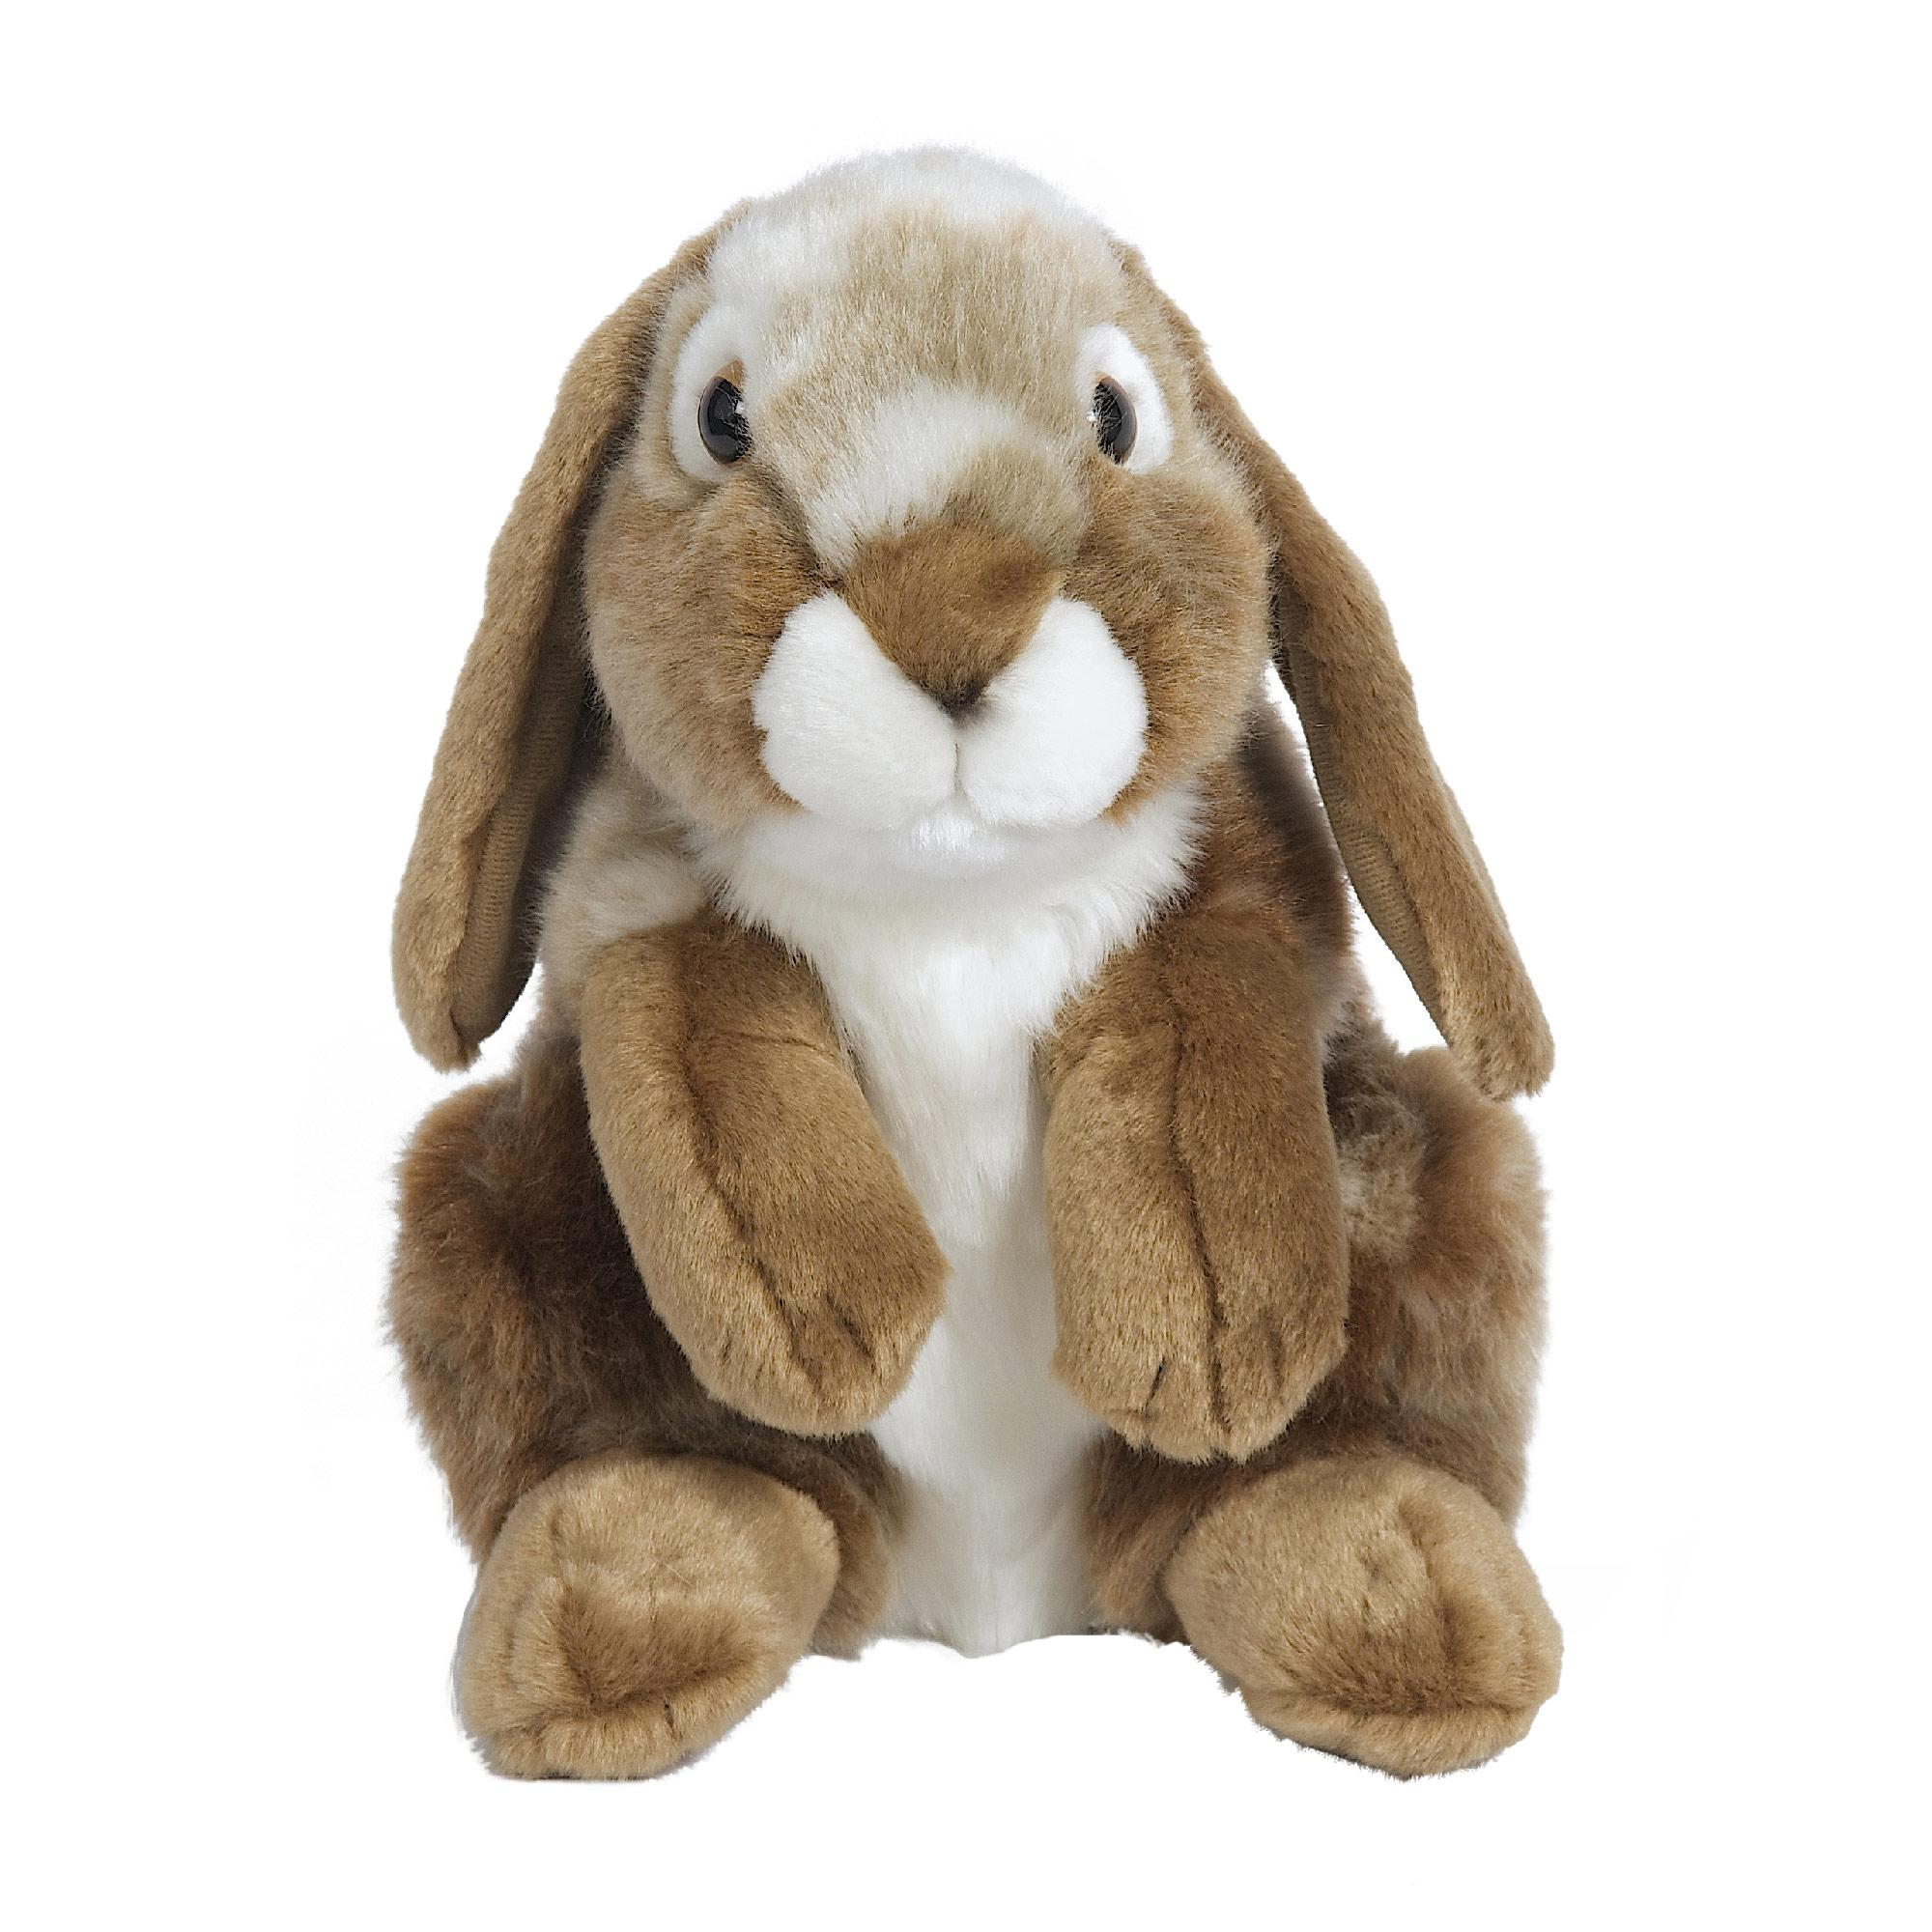 Hamleys Rabbit Soft Toy - £18.00 - Hamleys for Toys and Games